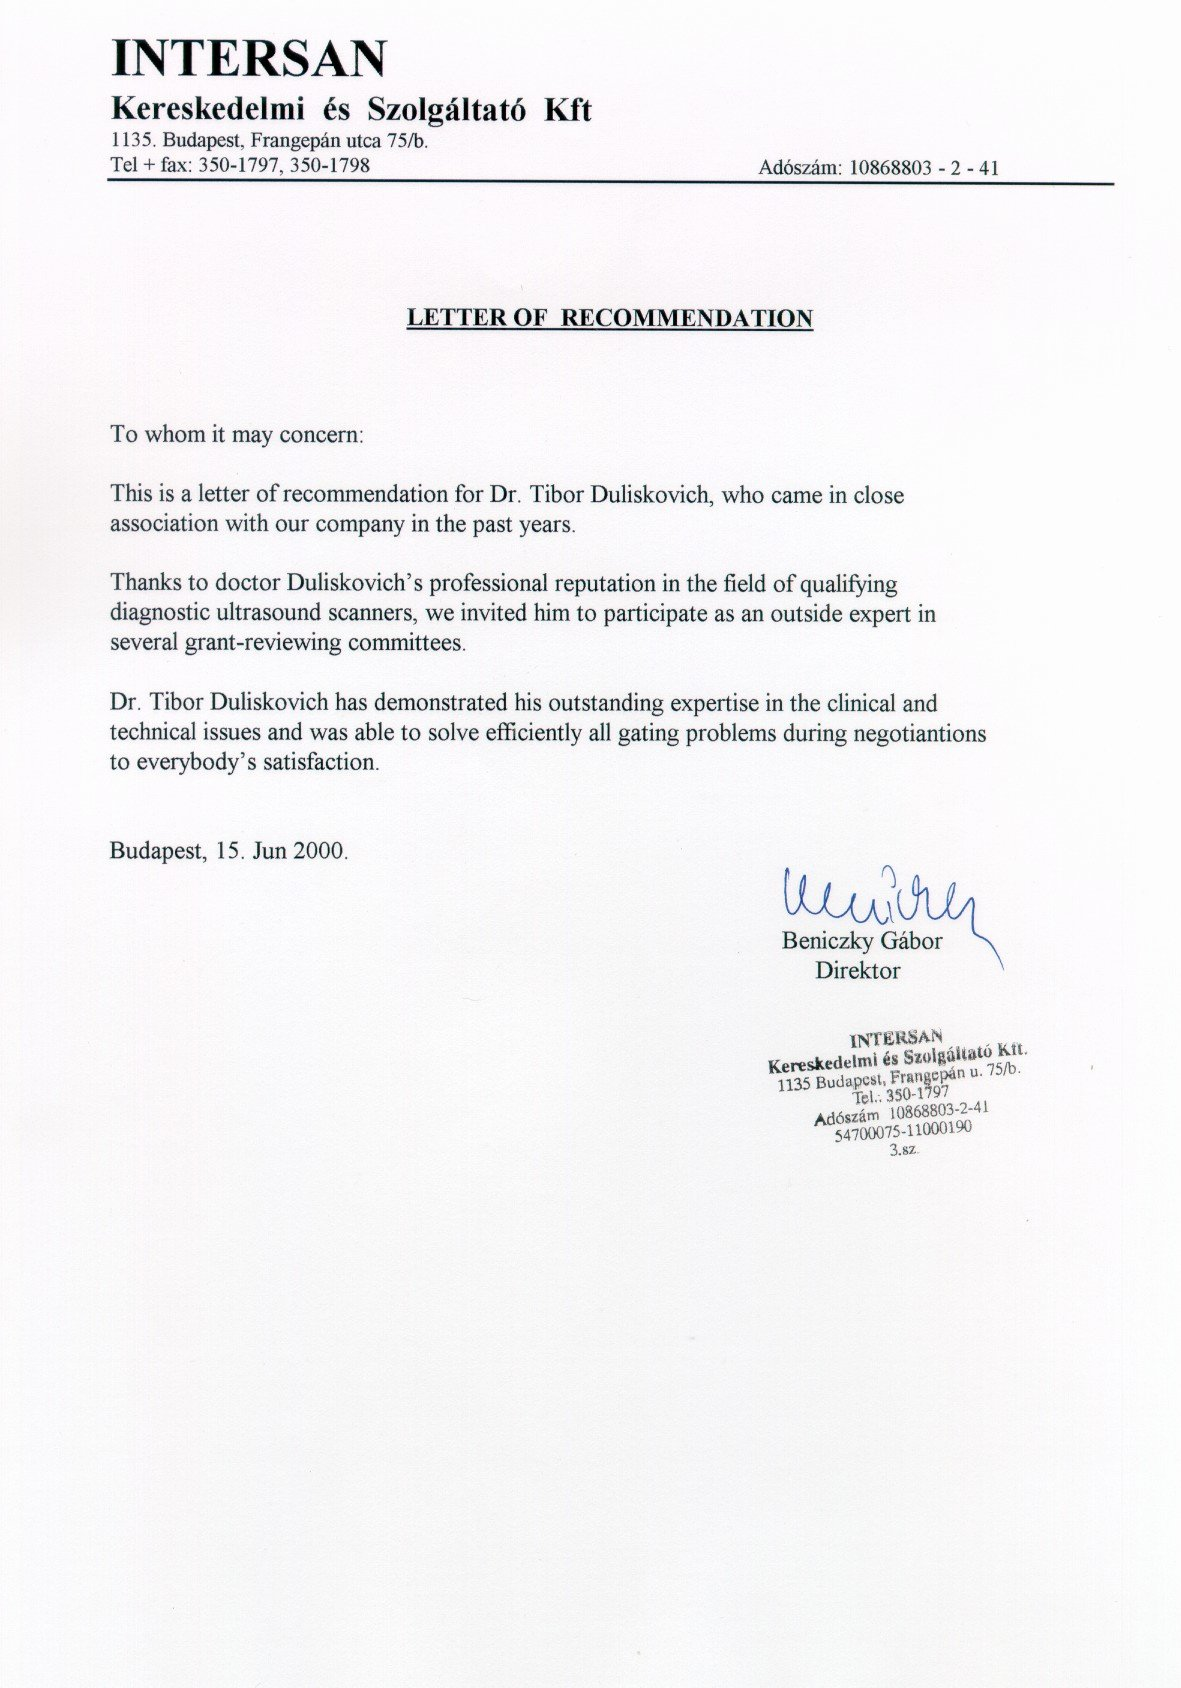 Physician assistant Letter Of Recommendation Lovely Physician assistant Letter Of Re Mendation